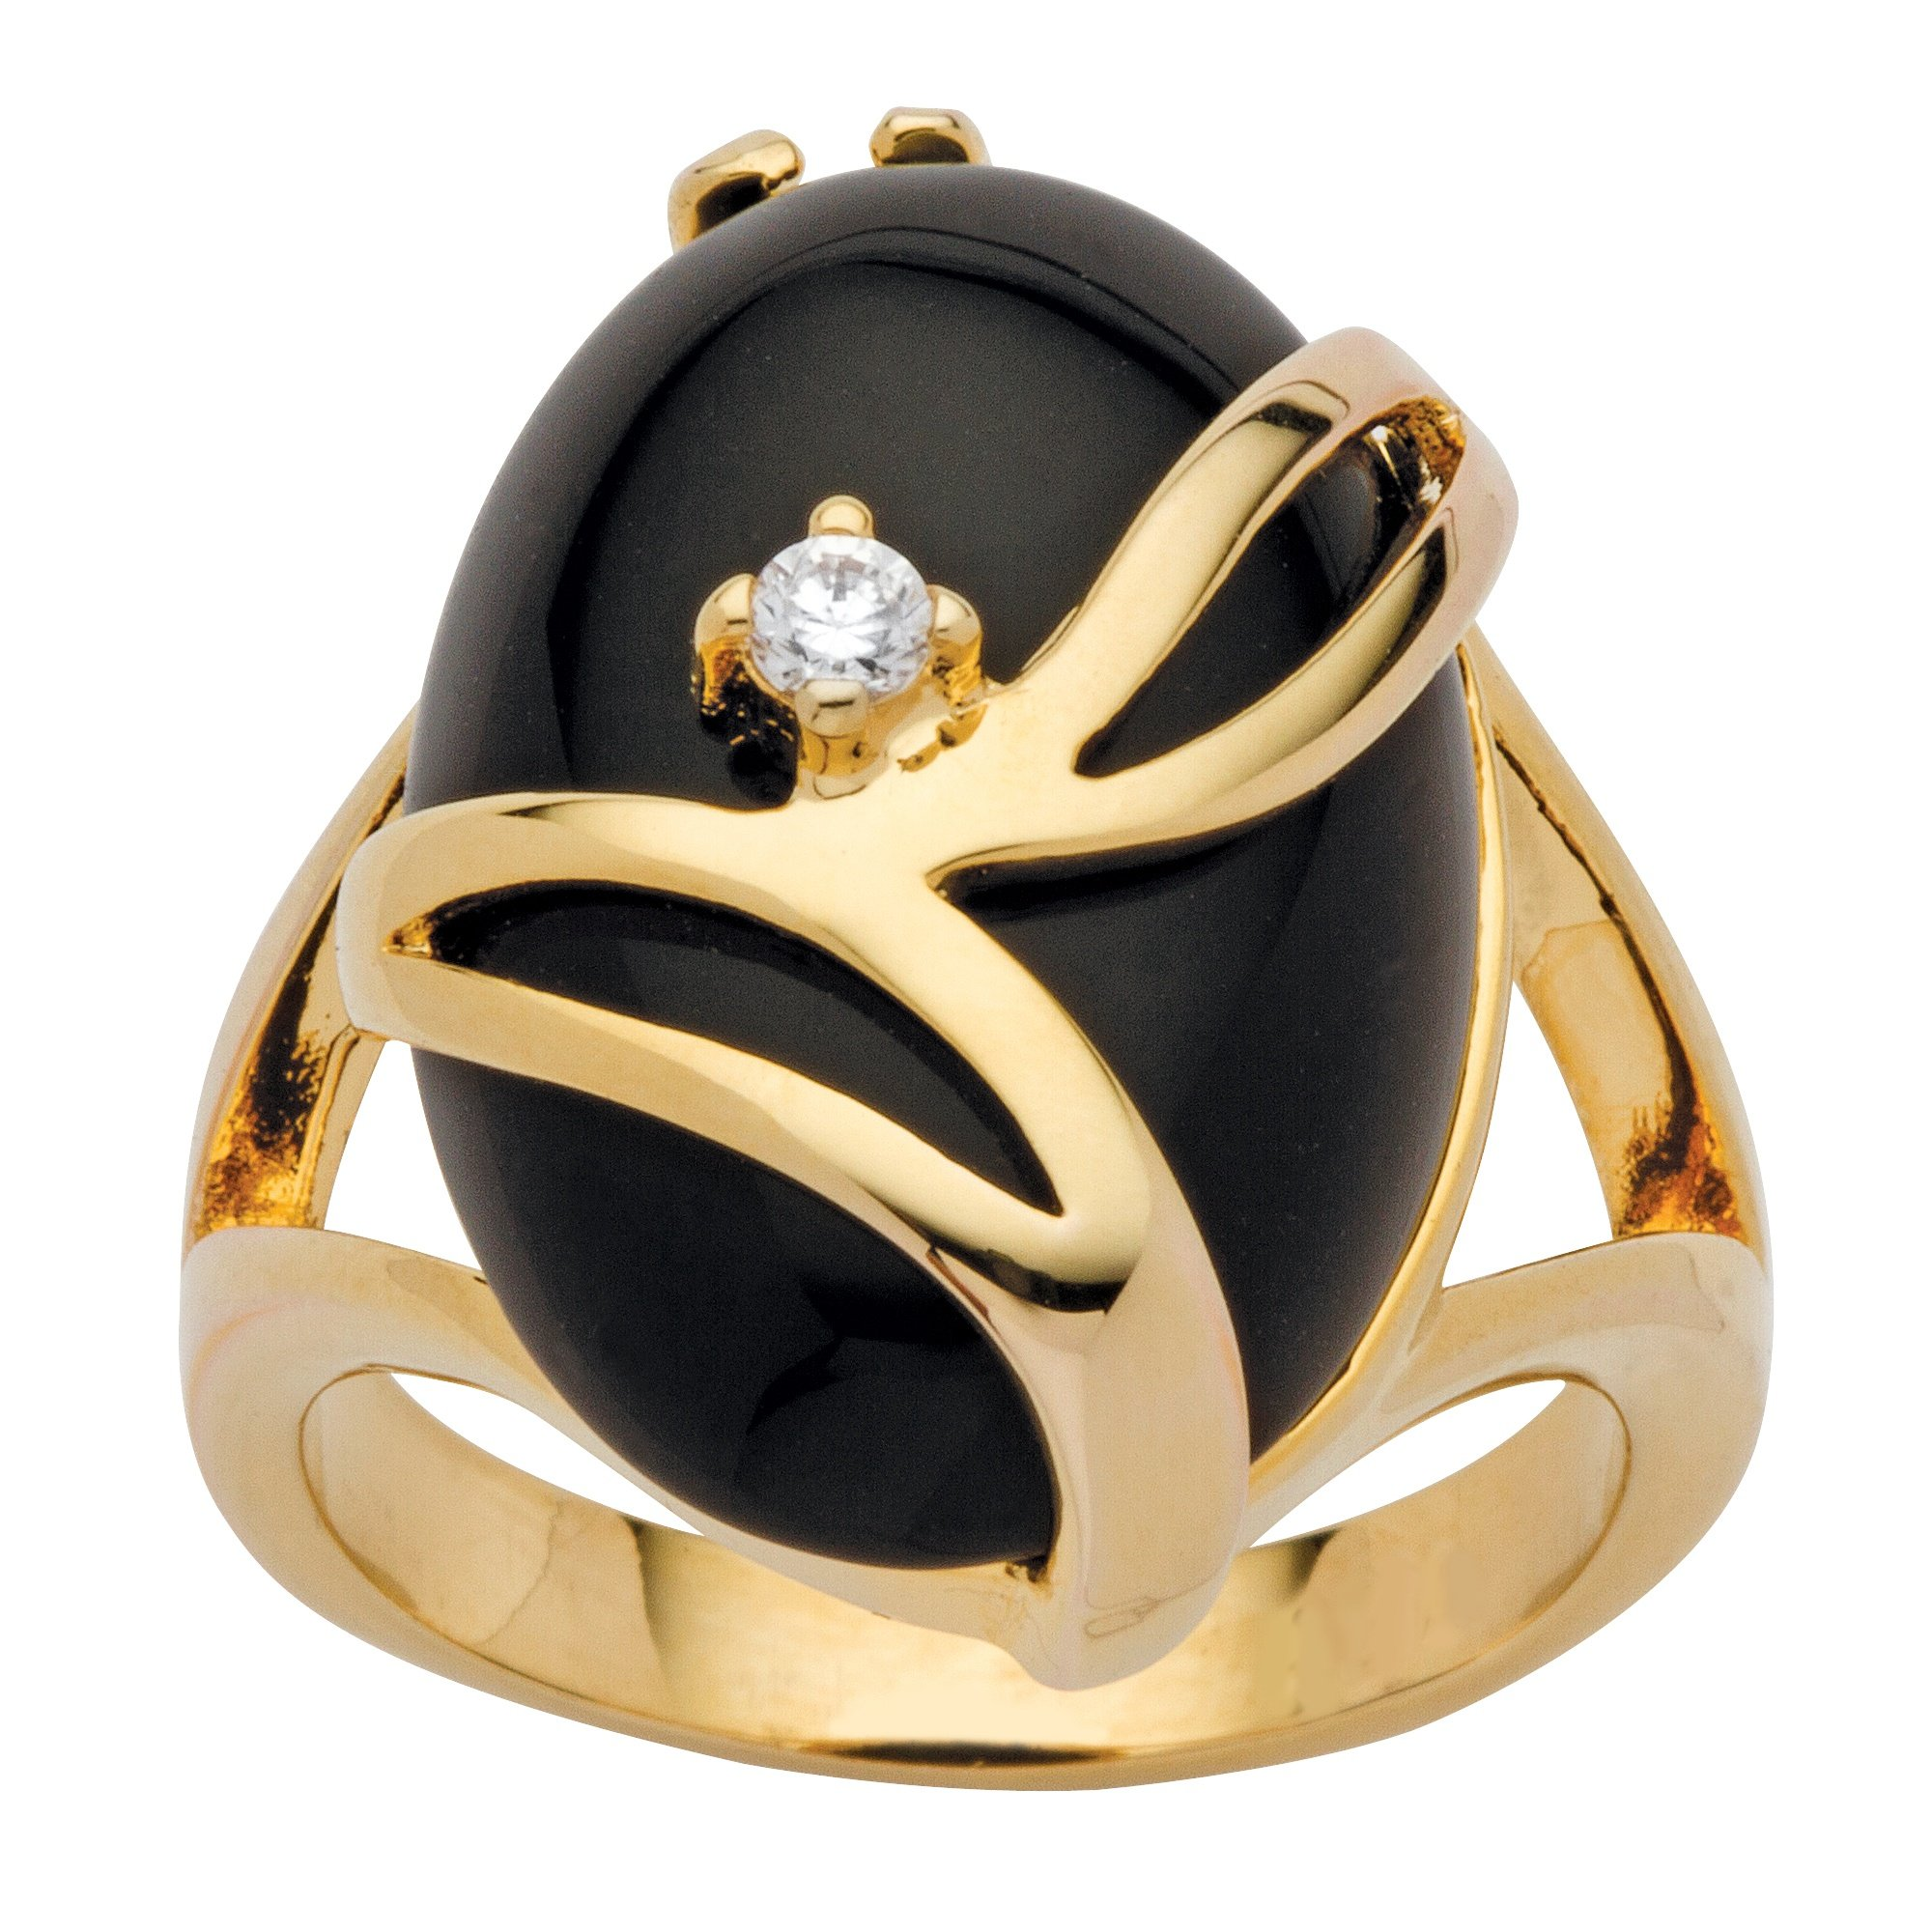 Palm Beach Jewelry 14K Yellow Gold-Plated Oval Shaped Natural Black Onyx Round Crystal Ring Size 6